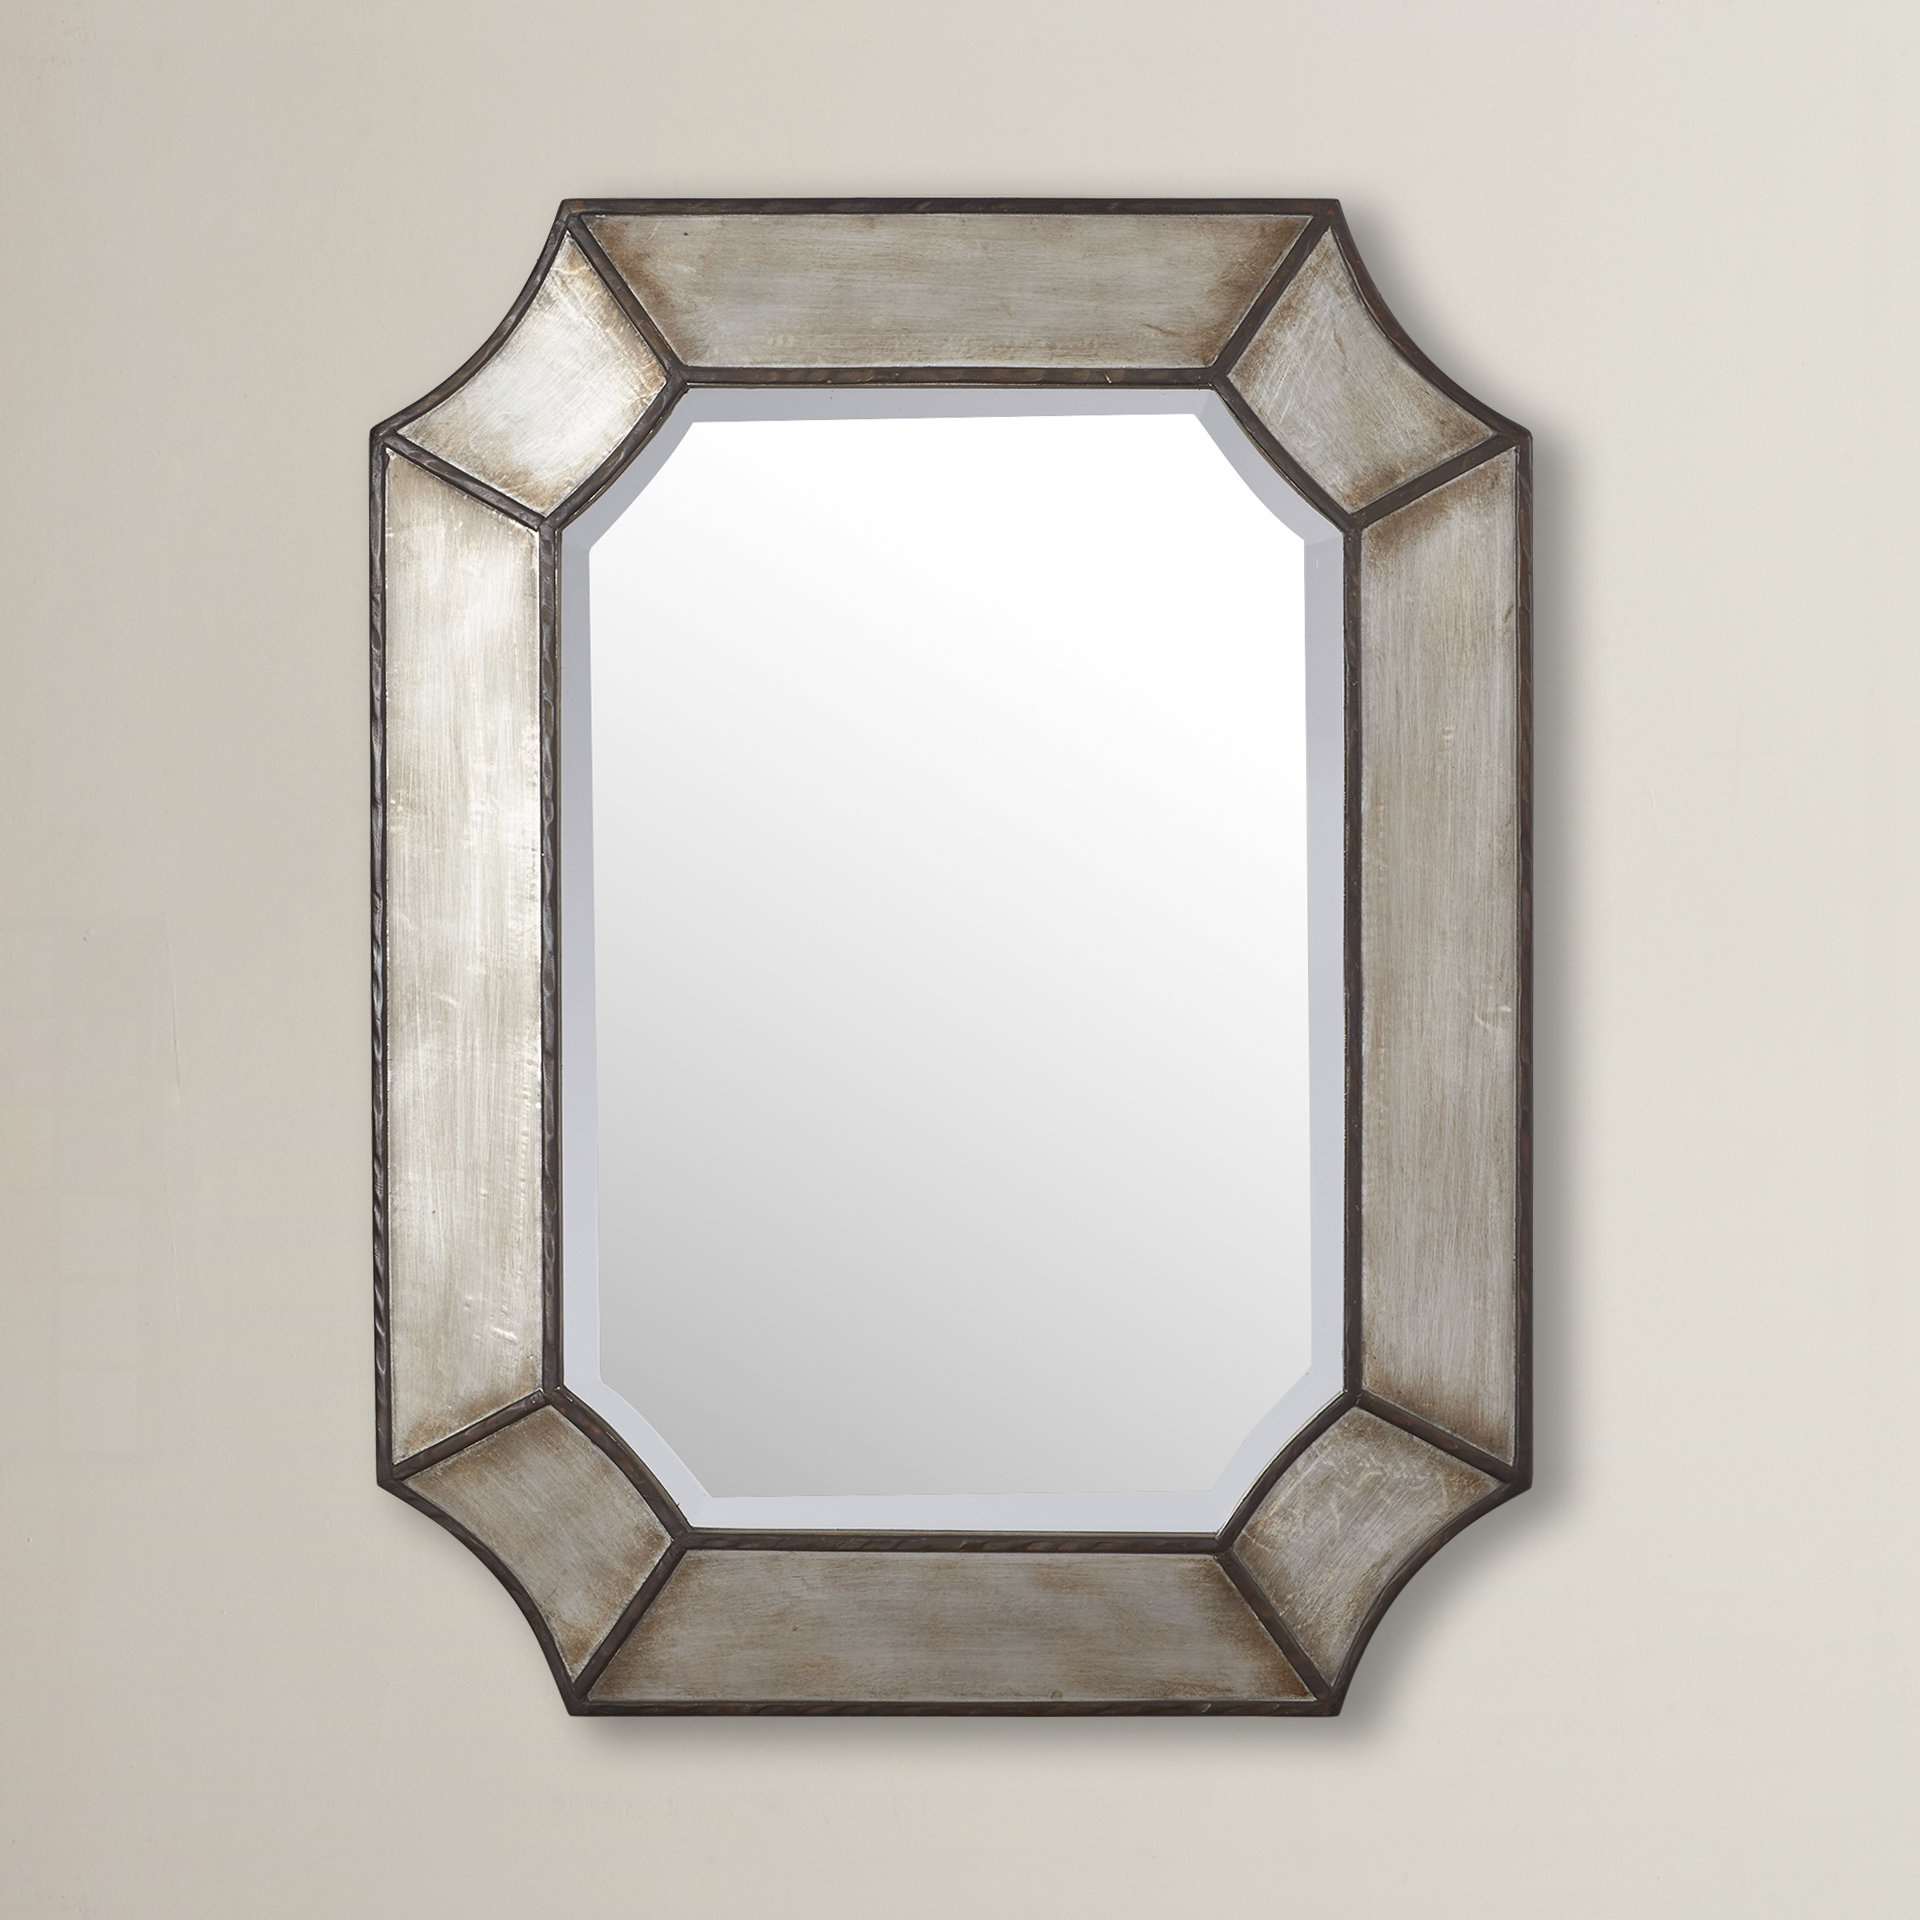 Industrial Wall & Accent Mirrors | Birch Lane With Koeller Industrial Metal Wall Mirrors (Image 7 of 20)